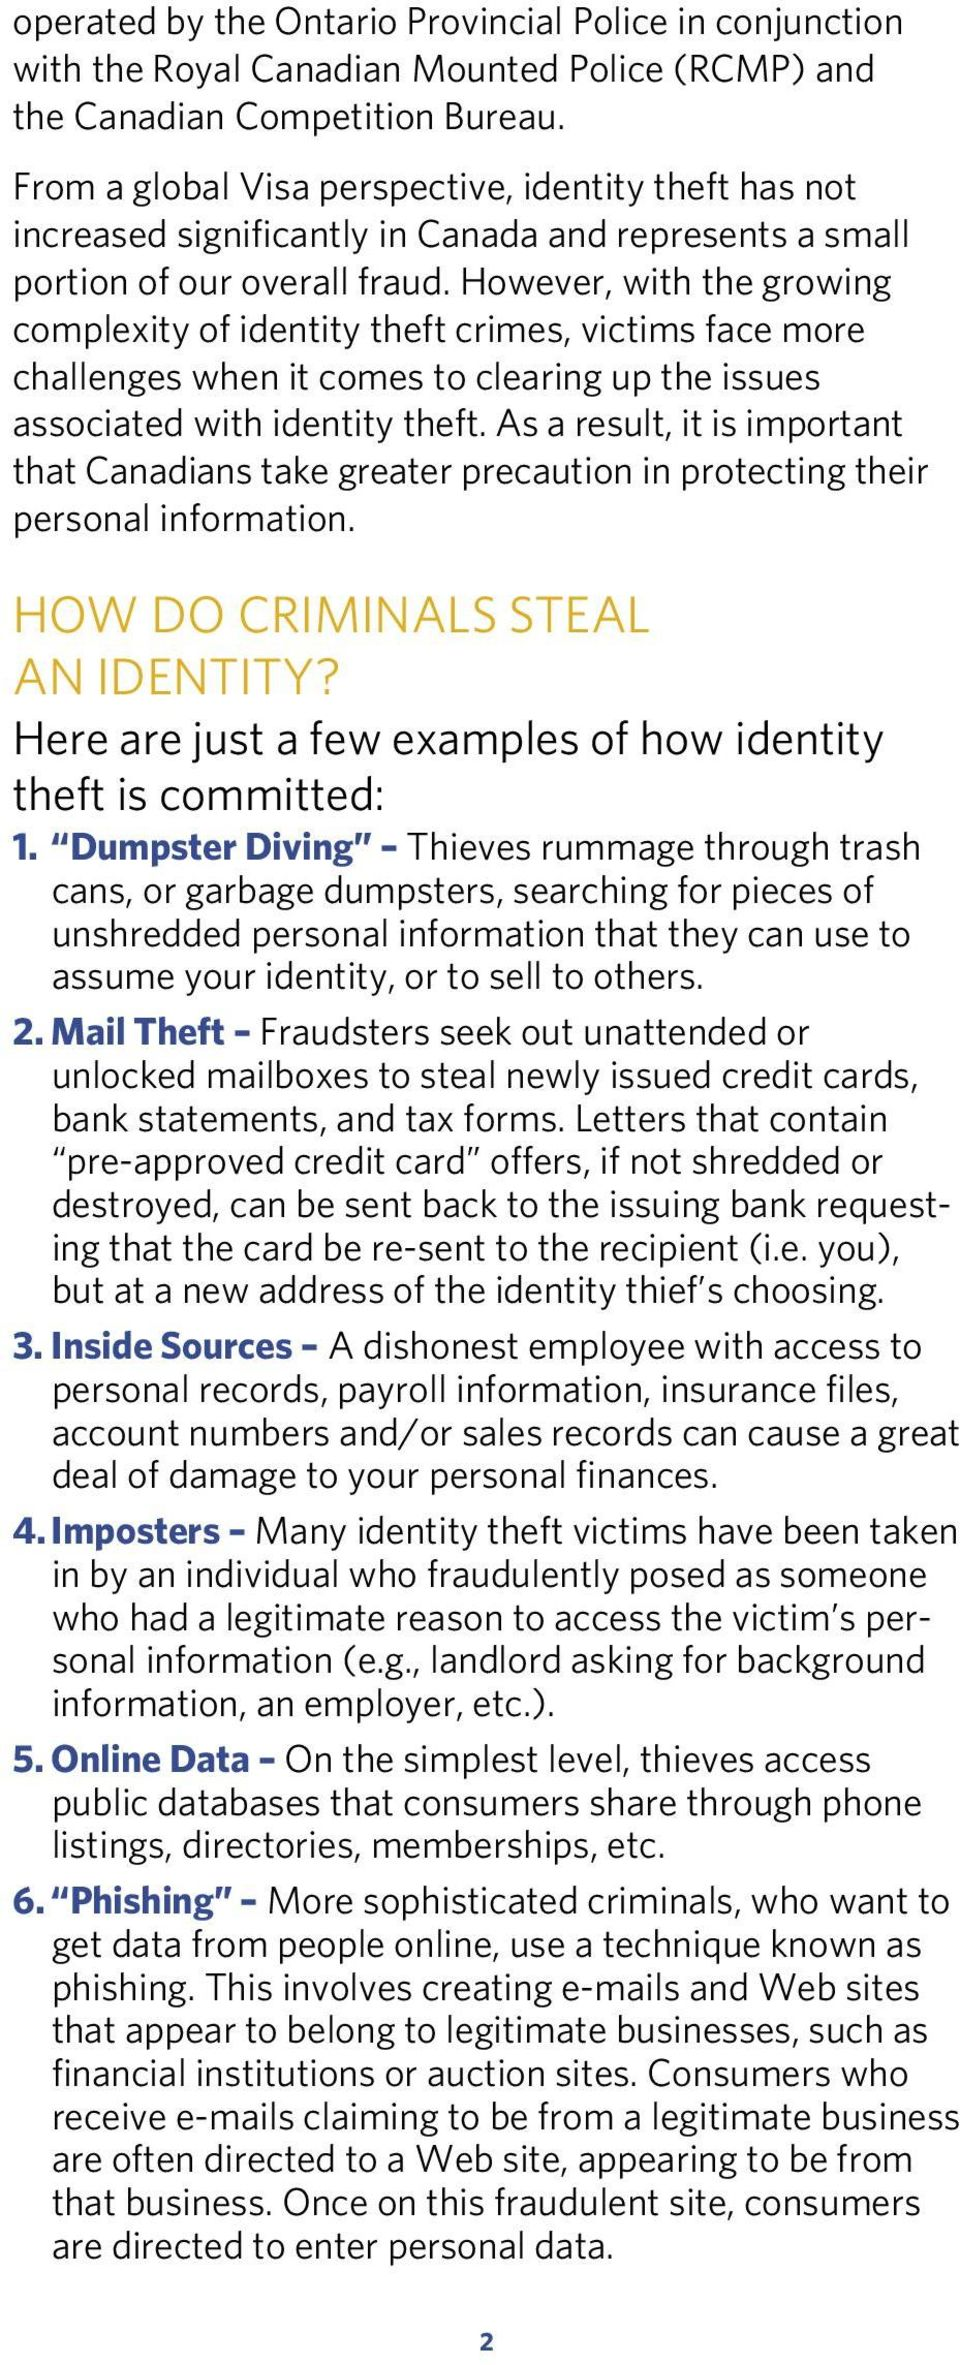 However, with the growing complexity of identity theft crimes, victims face more challenges when it comes to clearing up the issues associated with identity theft.